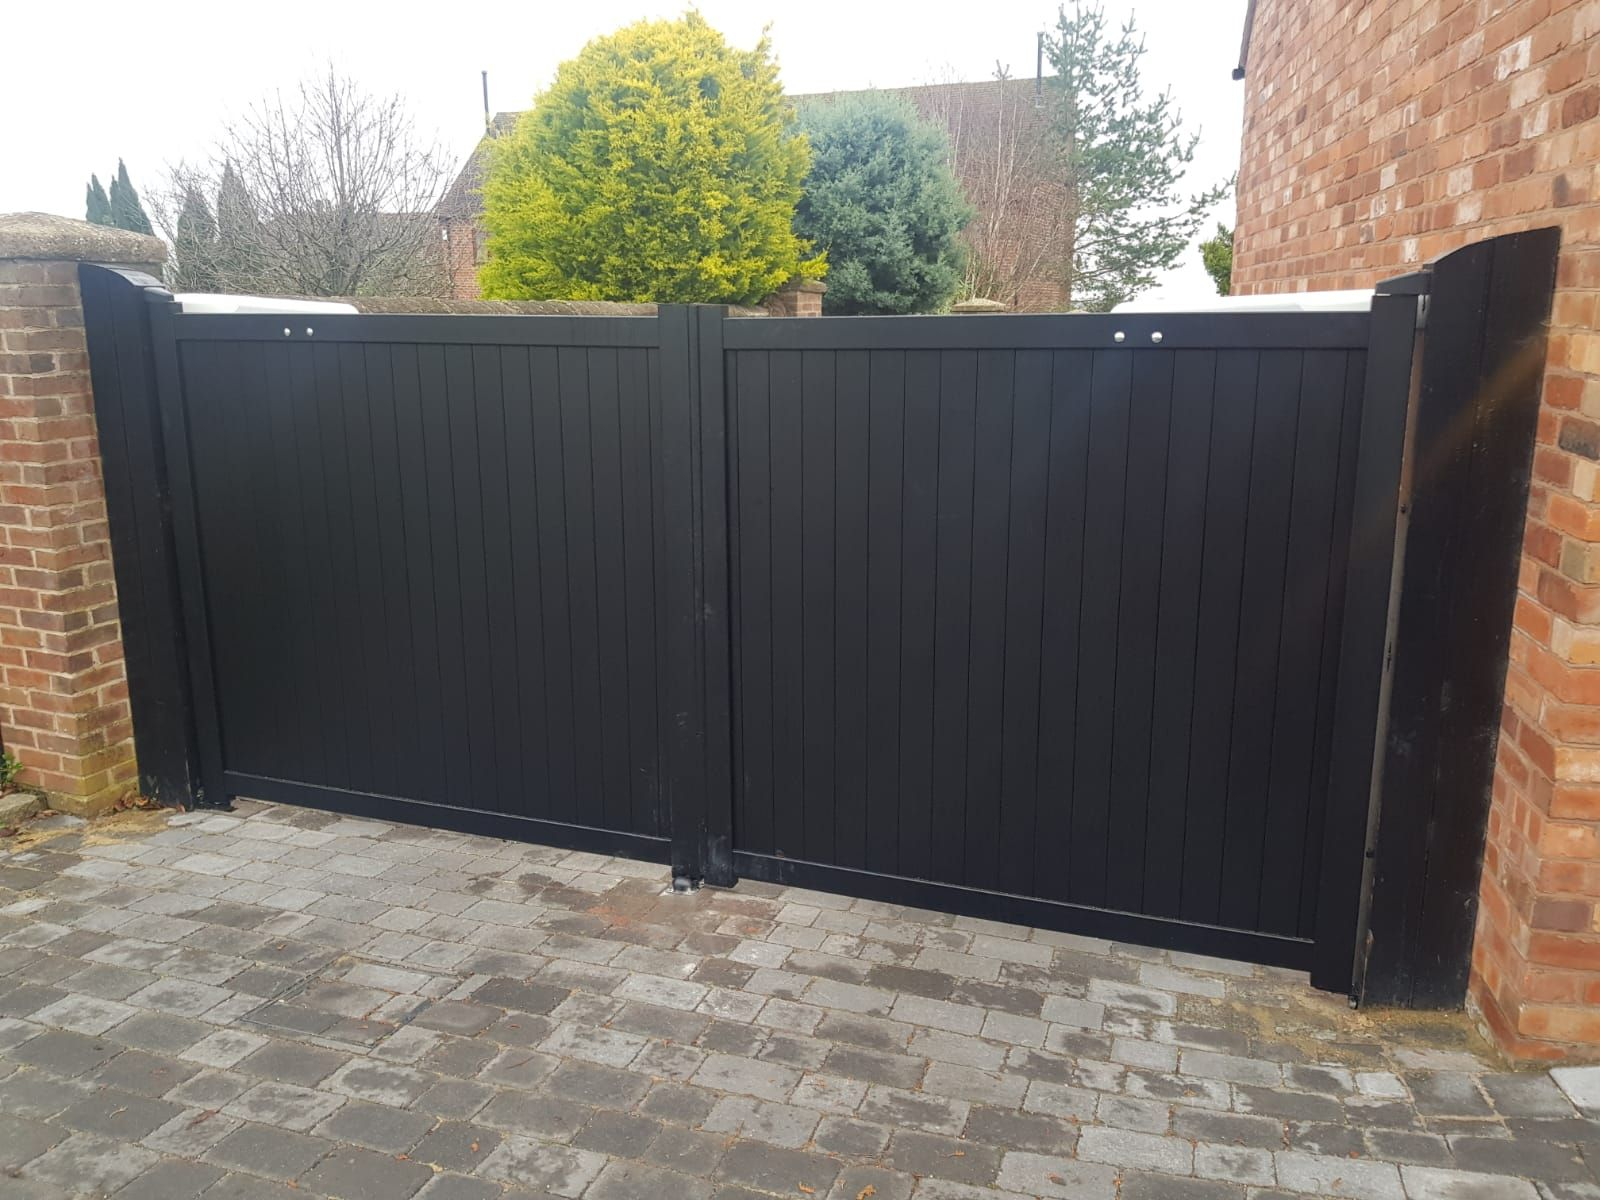 Black vertical panel aluminium drive gates fitted to brick pillars